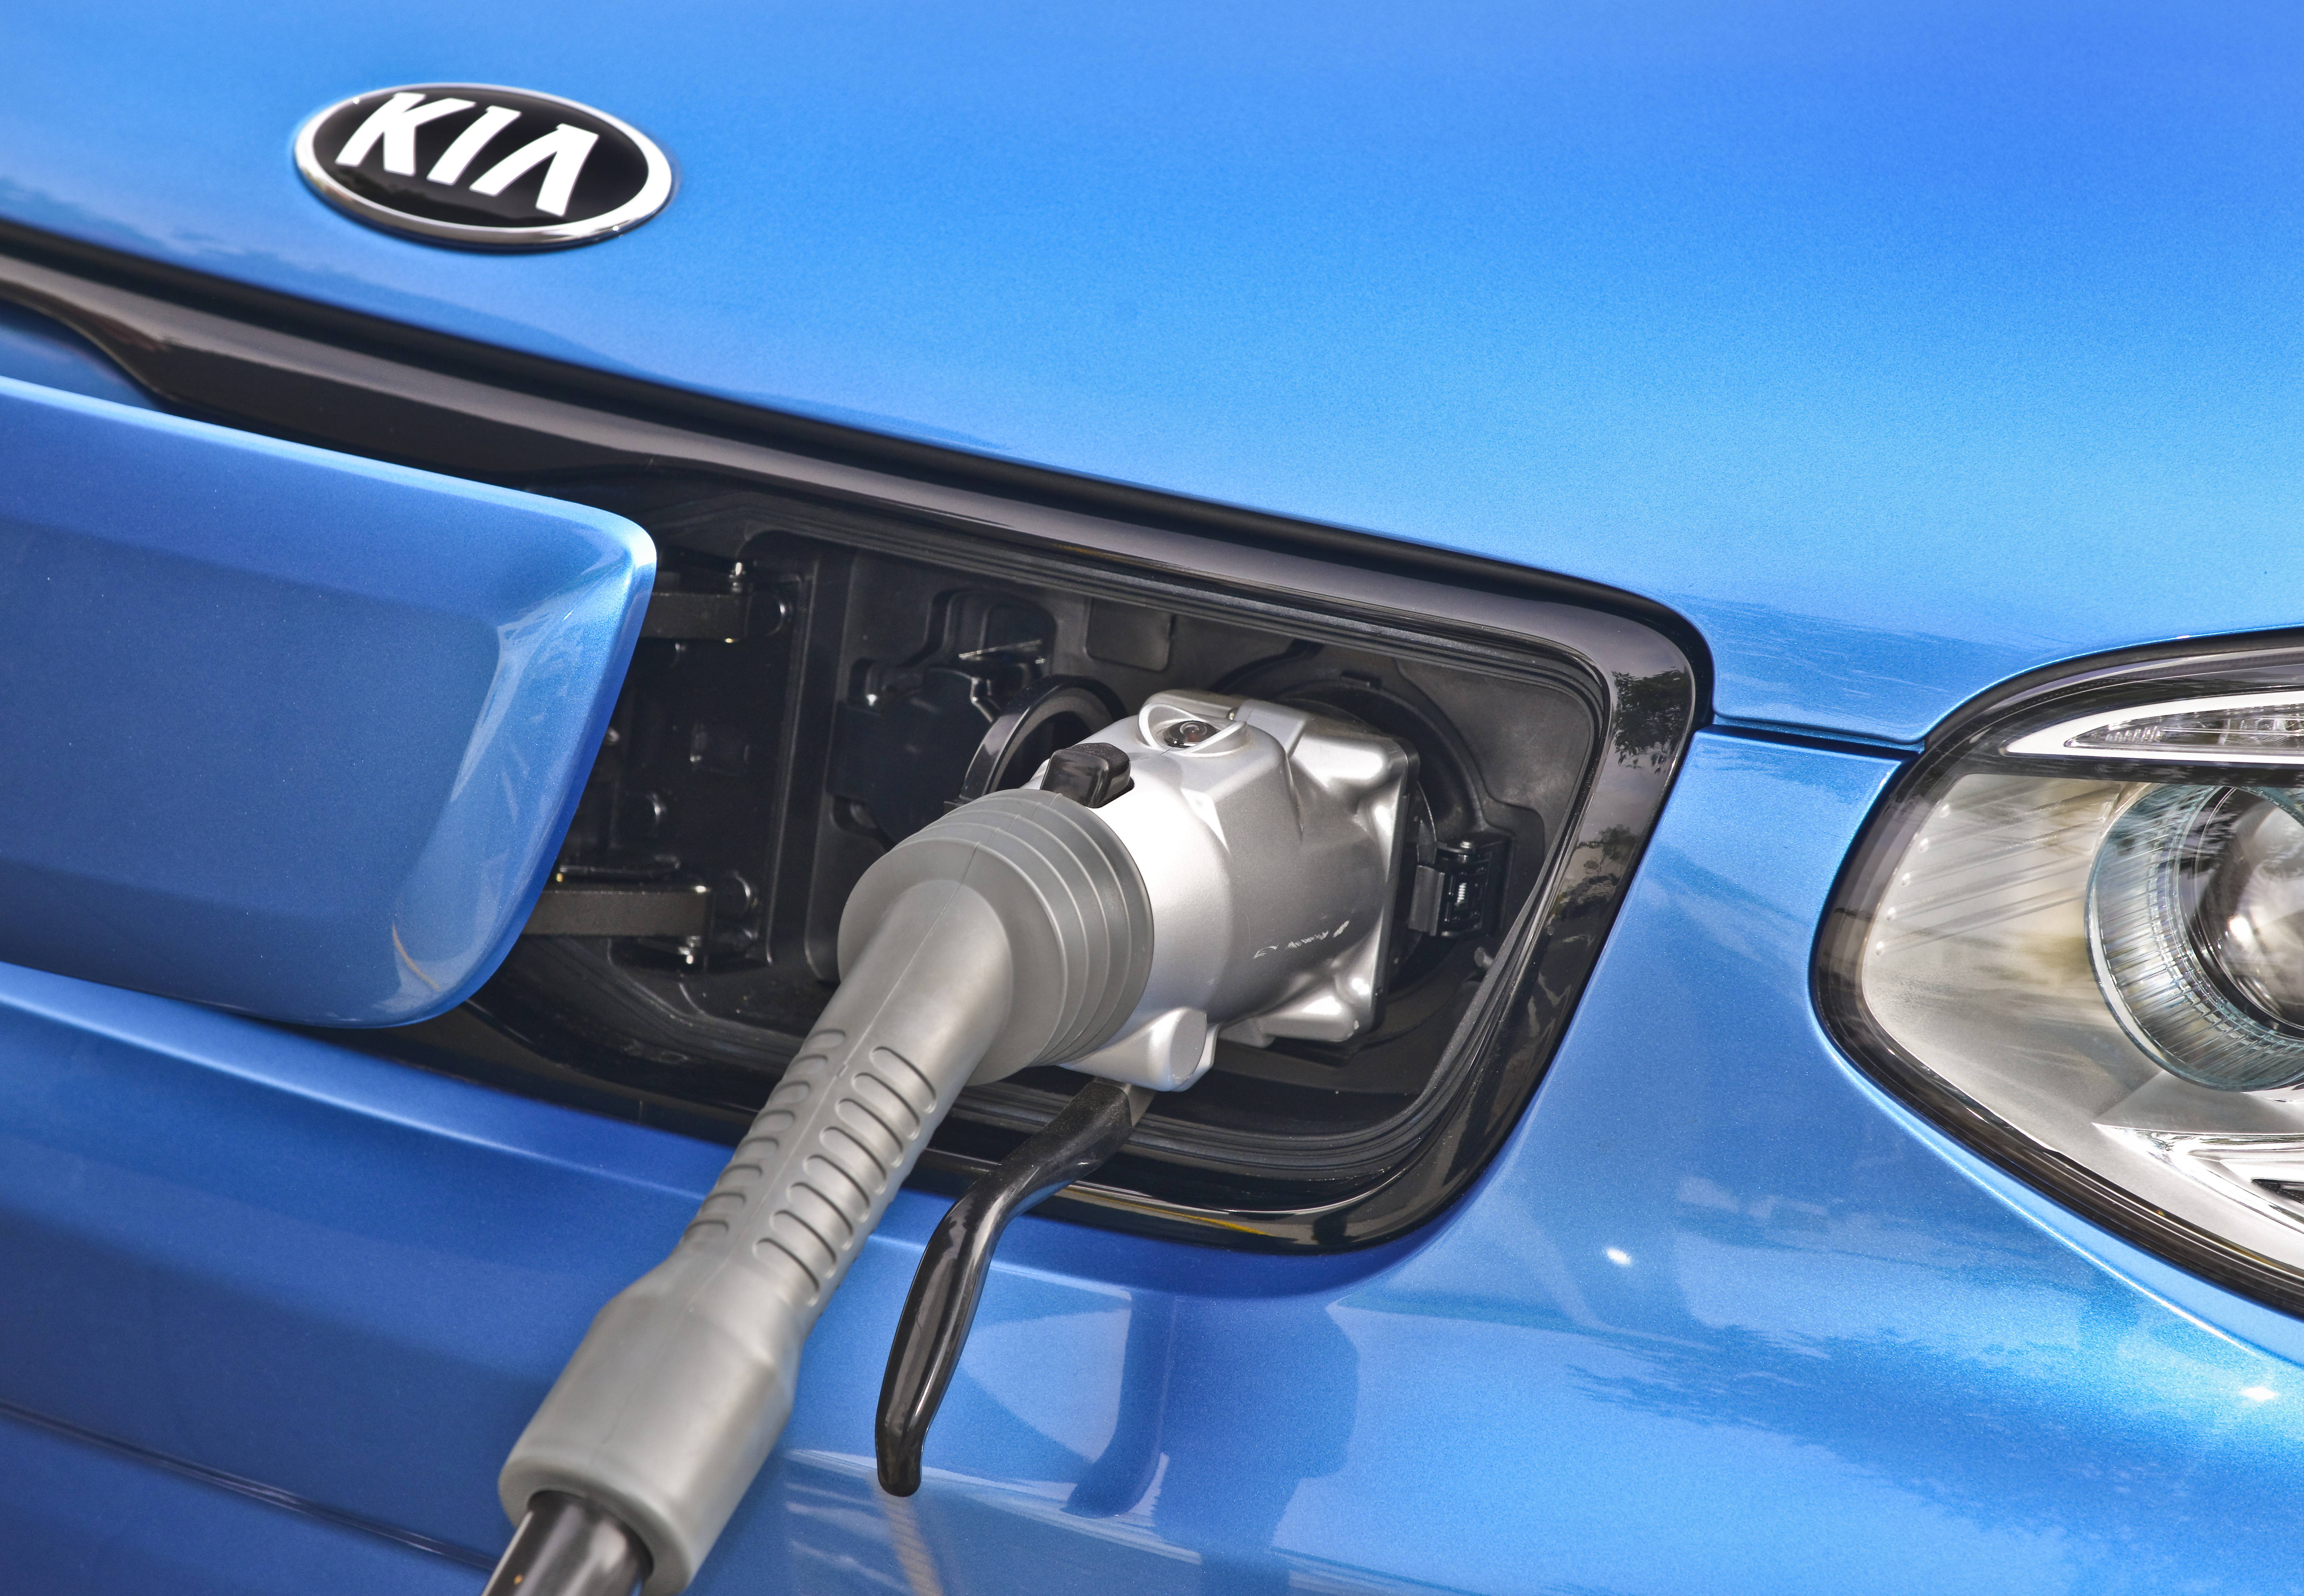 Kia Motors America is kicking off the implementation of a robust charging network in advance of the Soul EV going on sale in California during the third quarter of this year. (image credit: Kia Motors America)